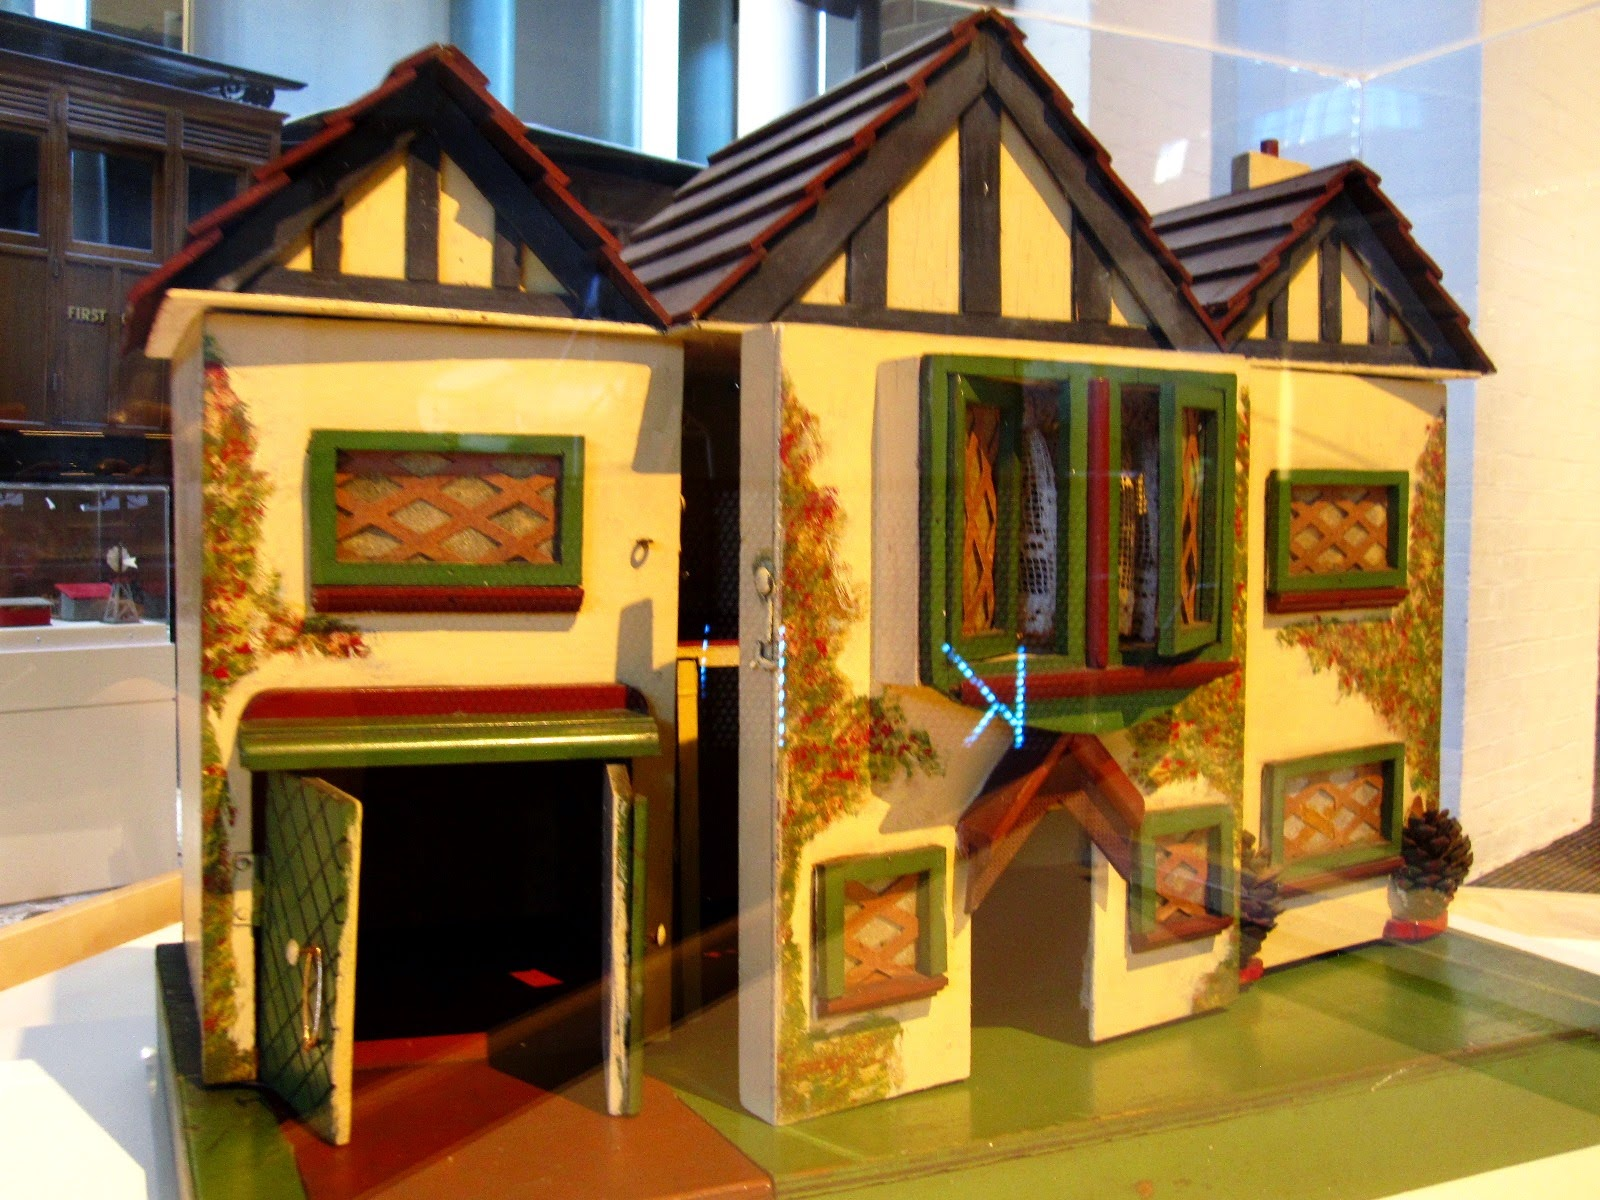 Front view of a vintage doll's house displayed in a museum.